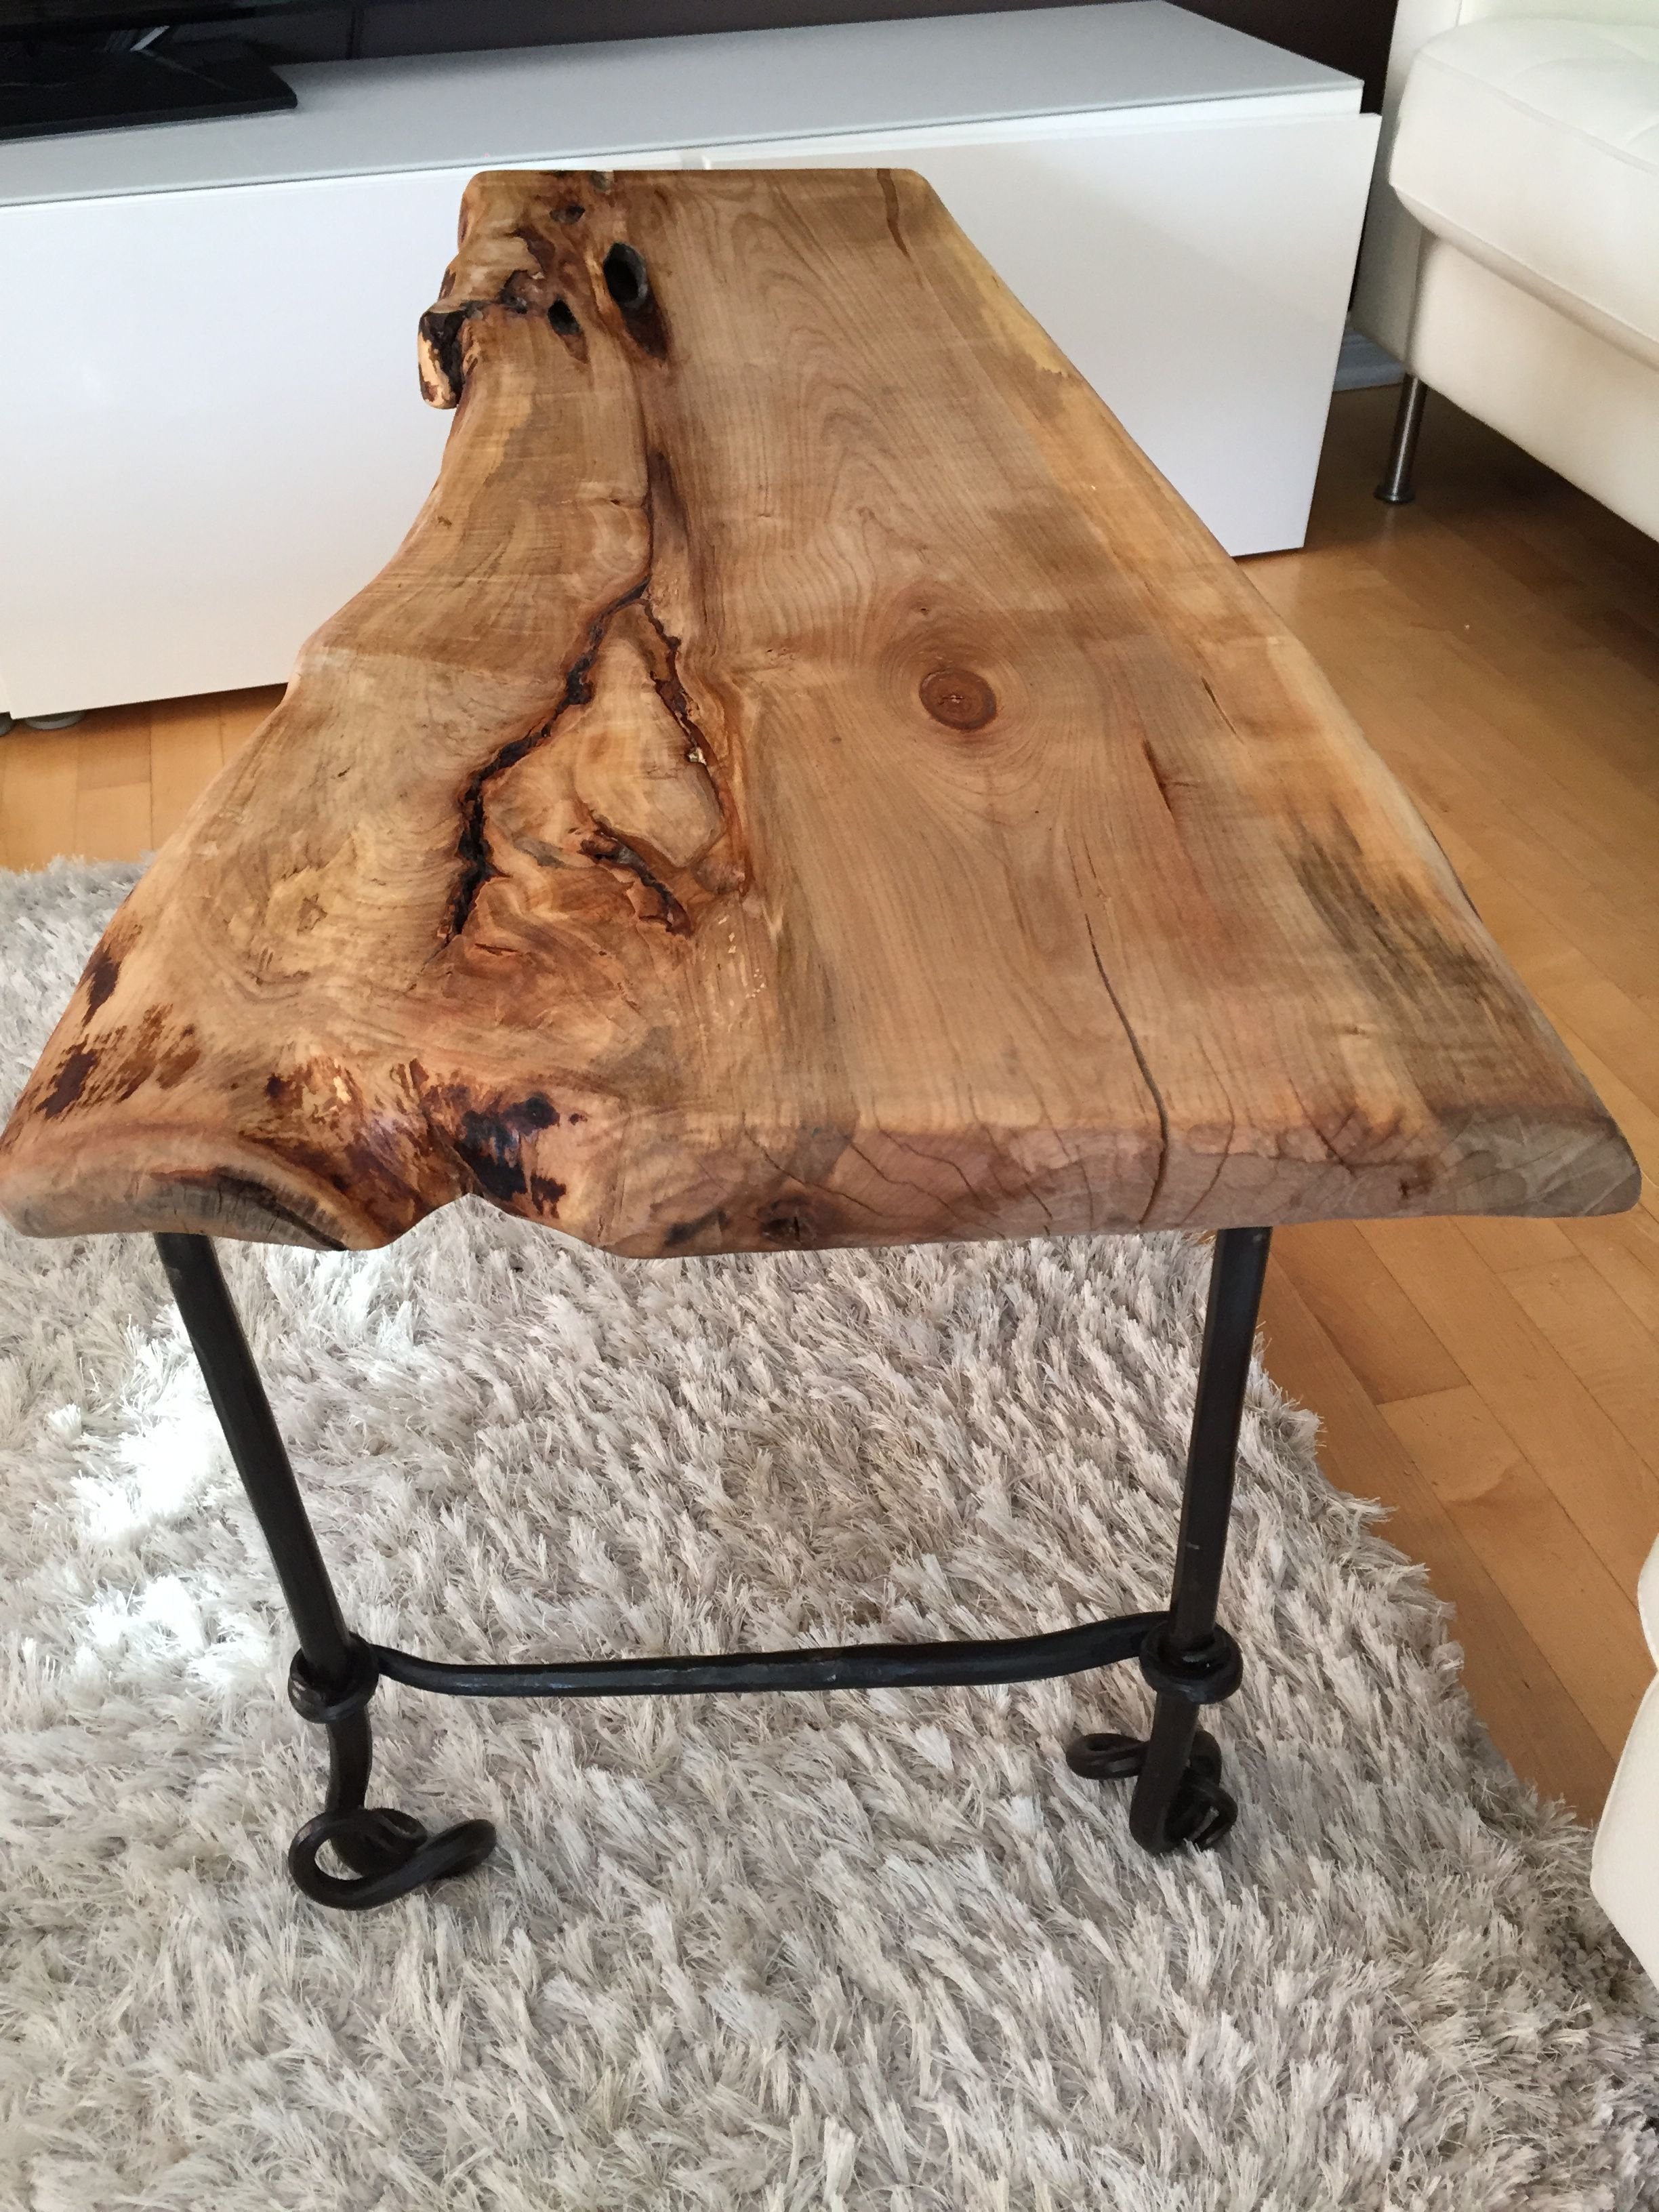 Using Recycled Materials For Diy Tree Stump Table Why Not